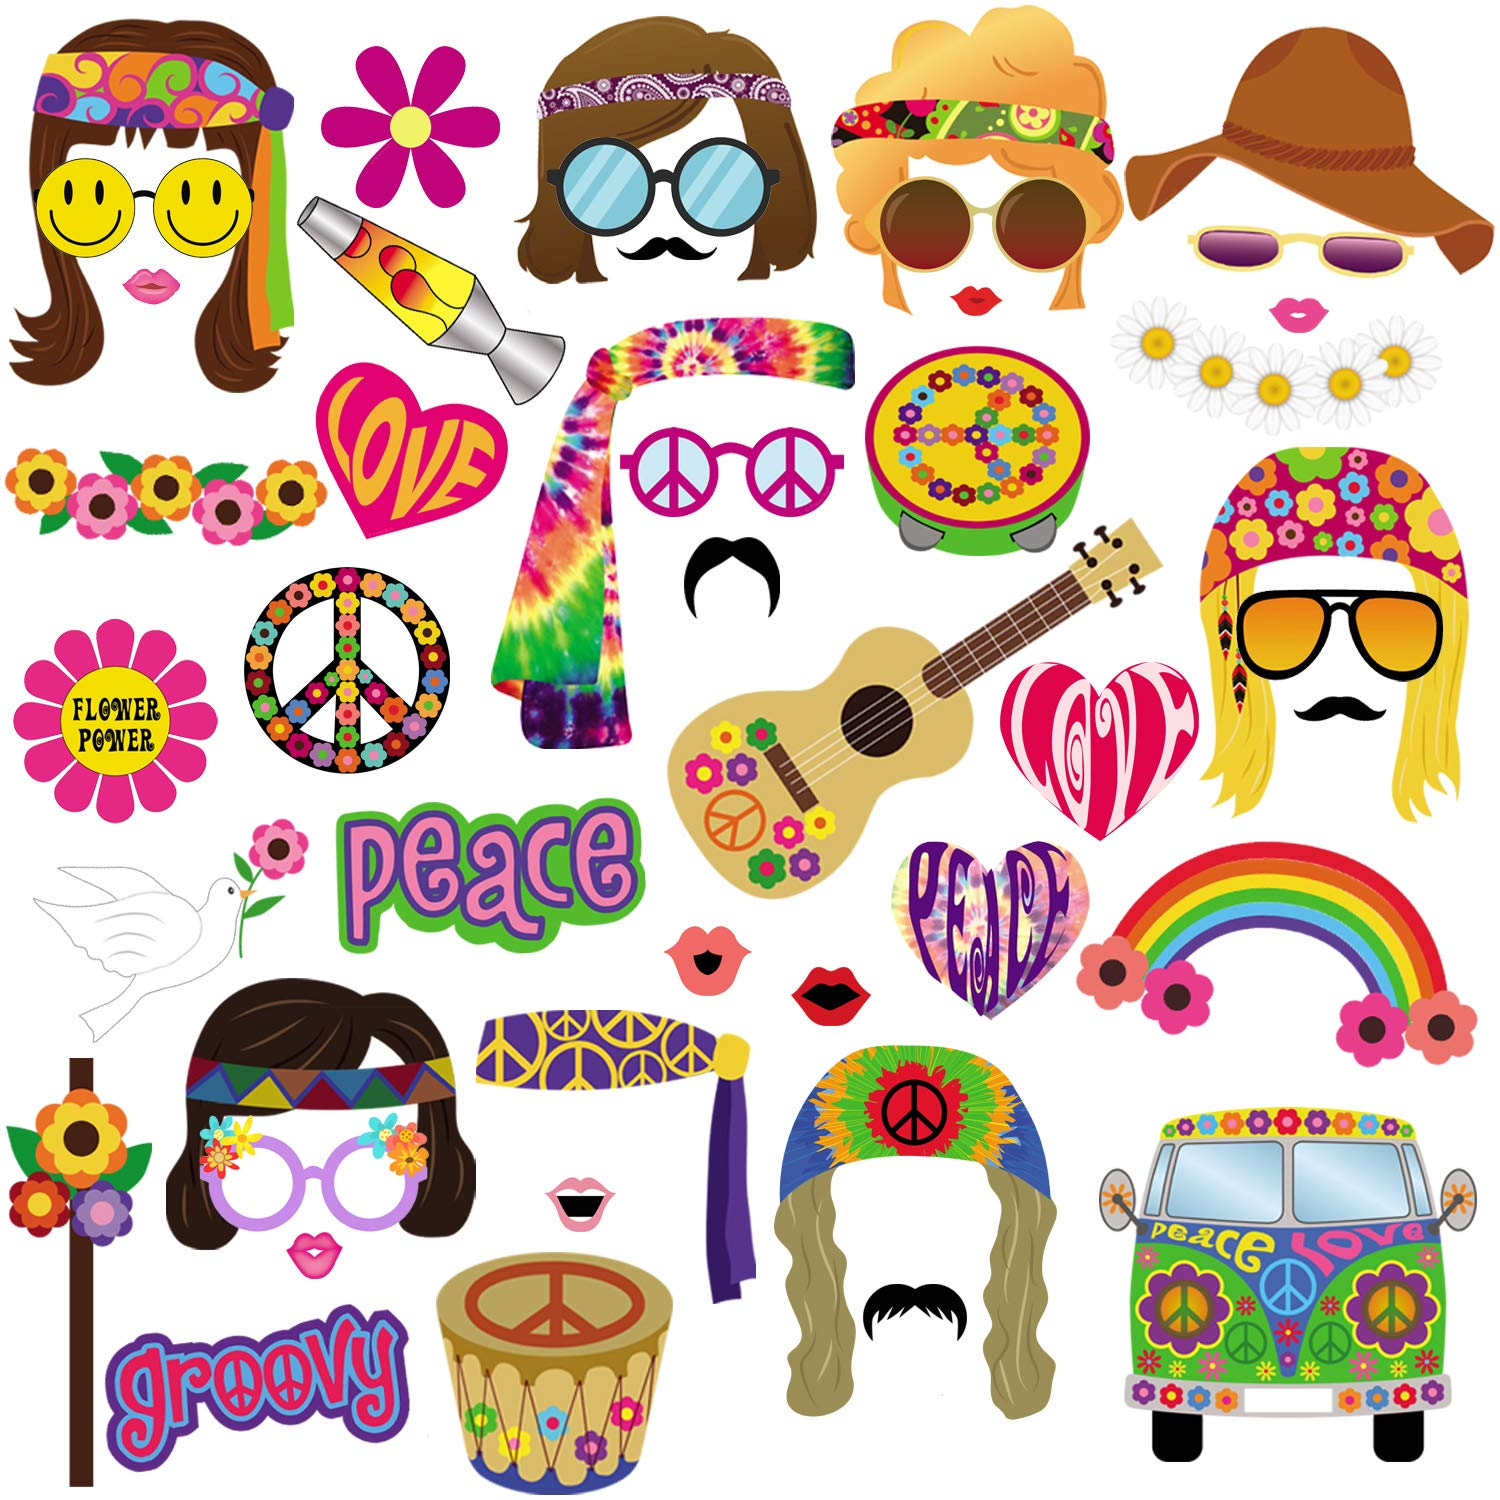 60s Photo Booth Props, 45pcs BizoeRade 60s Party Photo Booth, 1960s Theme Hippie Party Decorations, 60's Flower Power Photo Props for Groovy Party Woodstock Party by BizoeRade (Image #1)